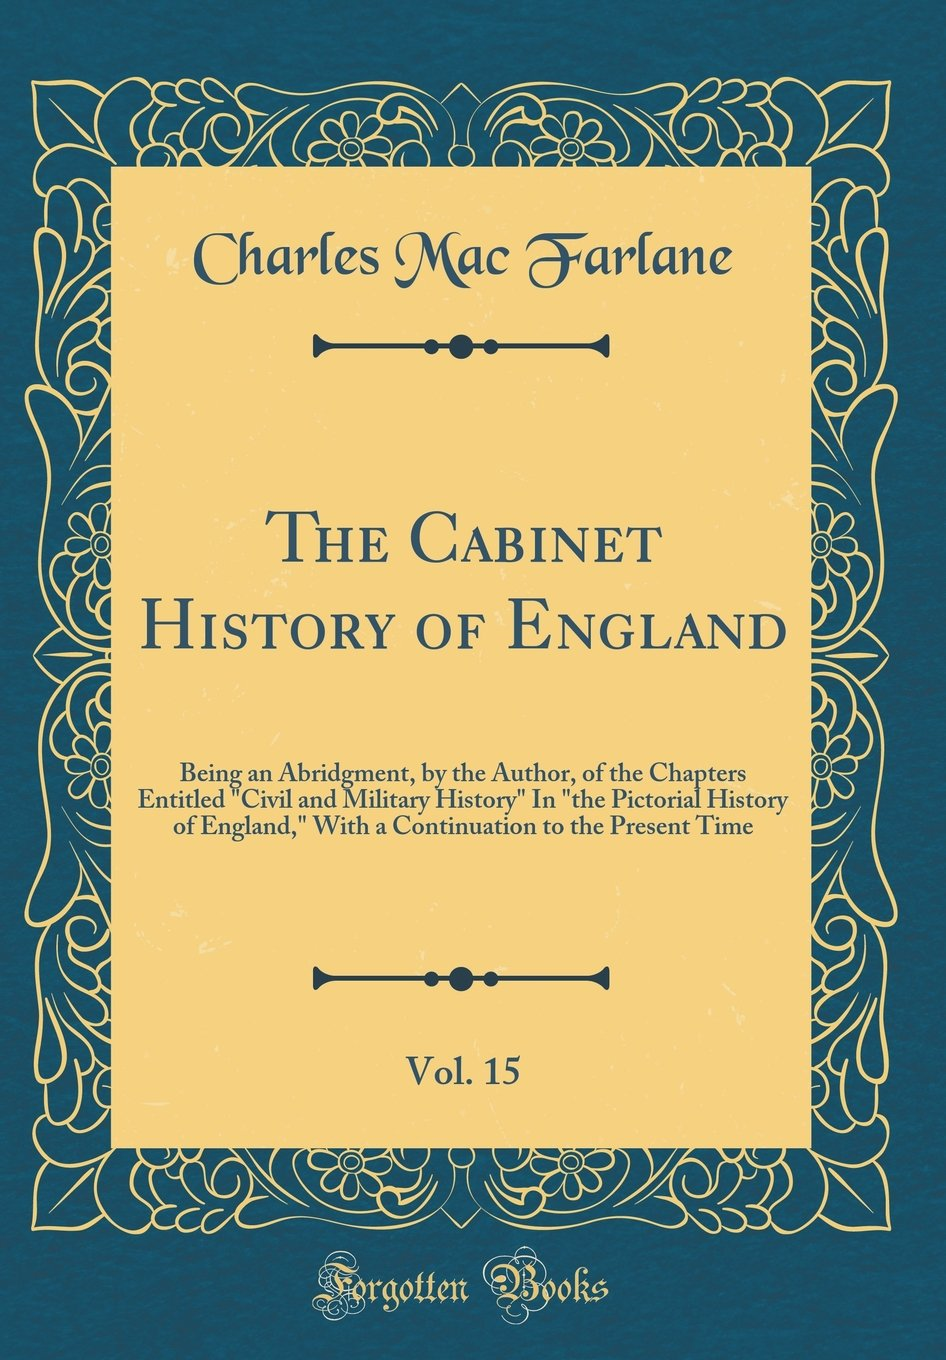 """The Cabinet History of England, Vol. 15: Being an Abridgment, by the Author, of the Chapters Entitled """"Civil and Military History"""" In """"the Pictorial ... to the Present Time (Classic Reprint) PDF"""